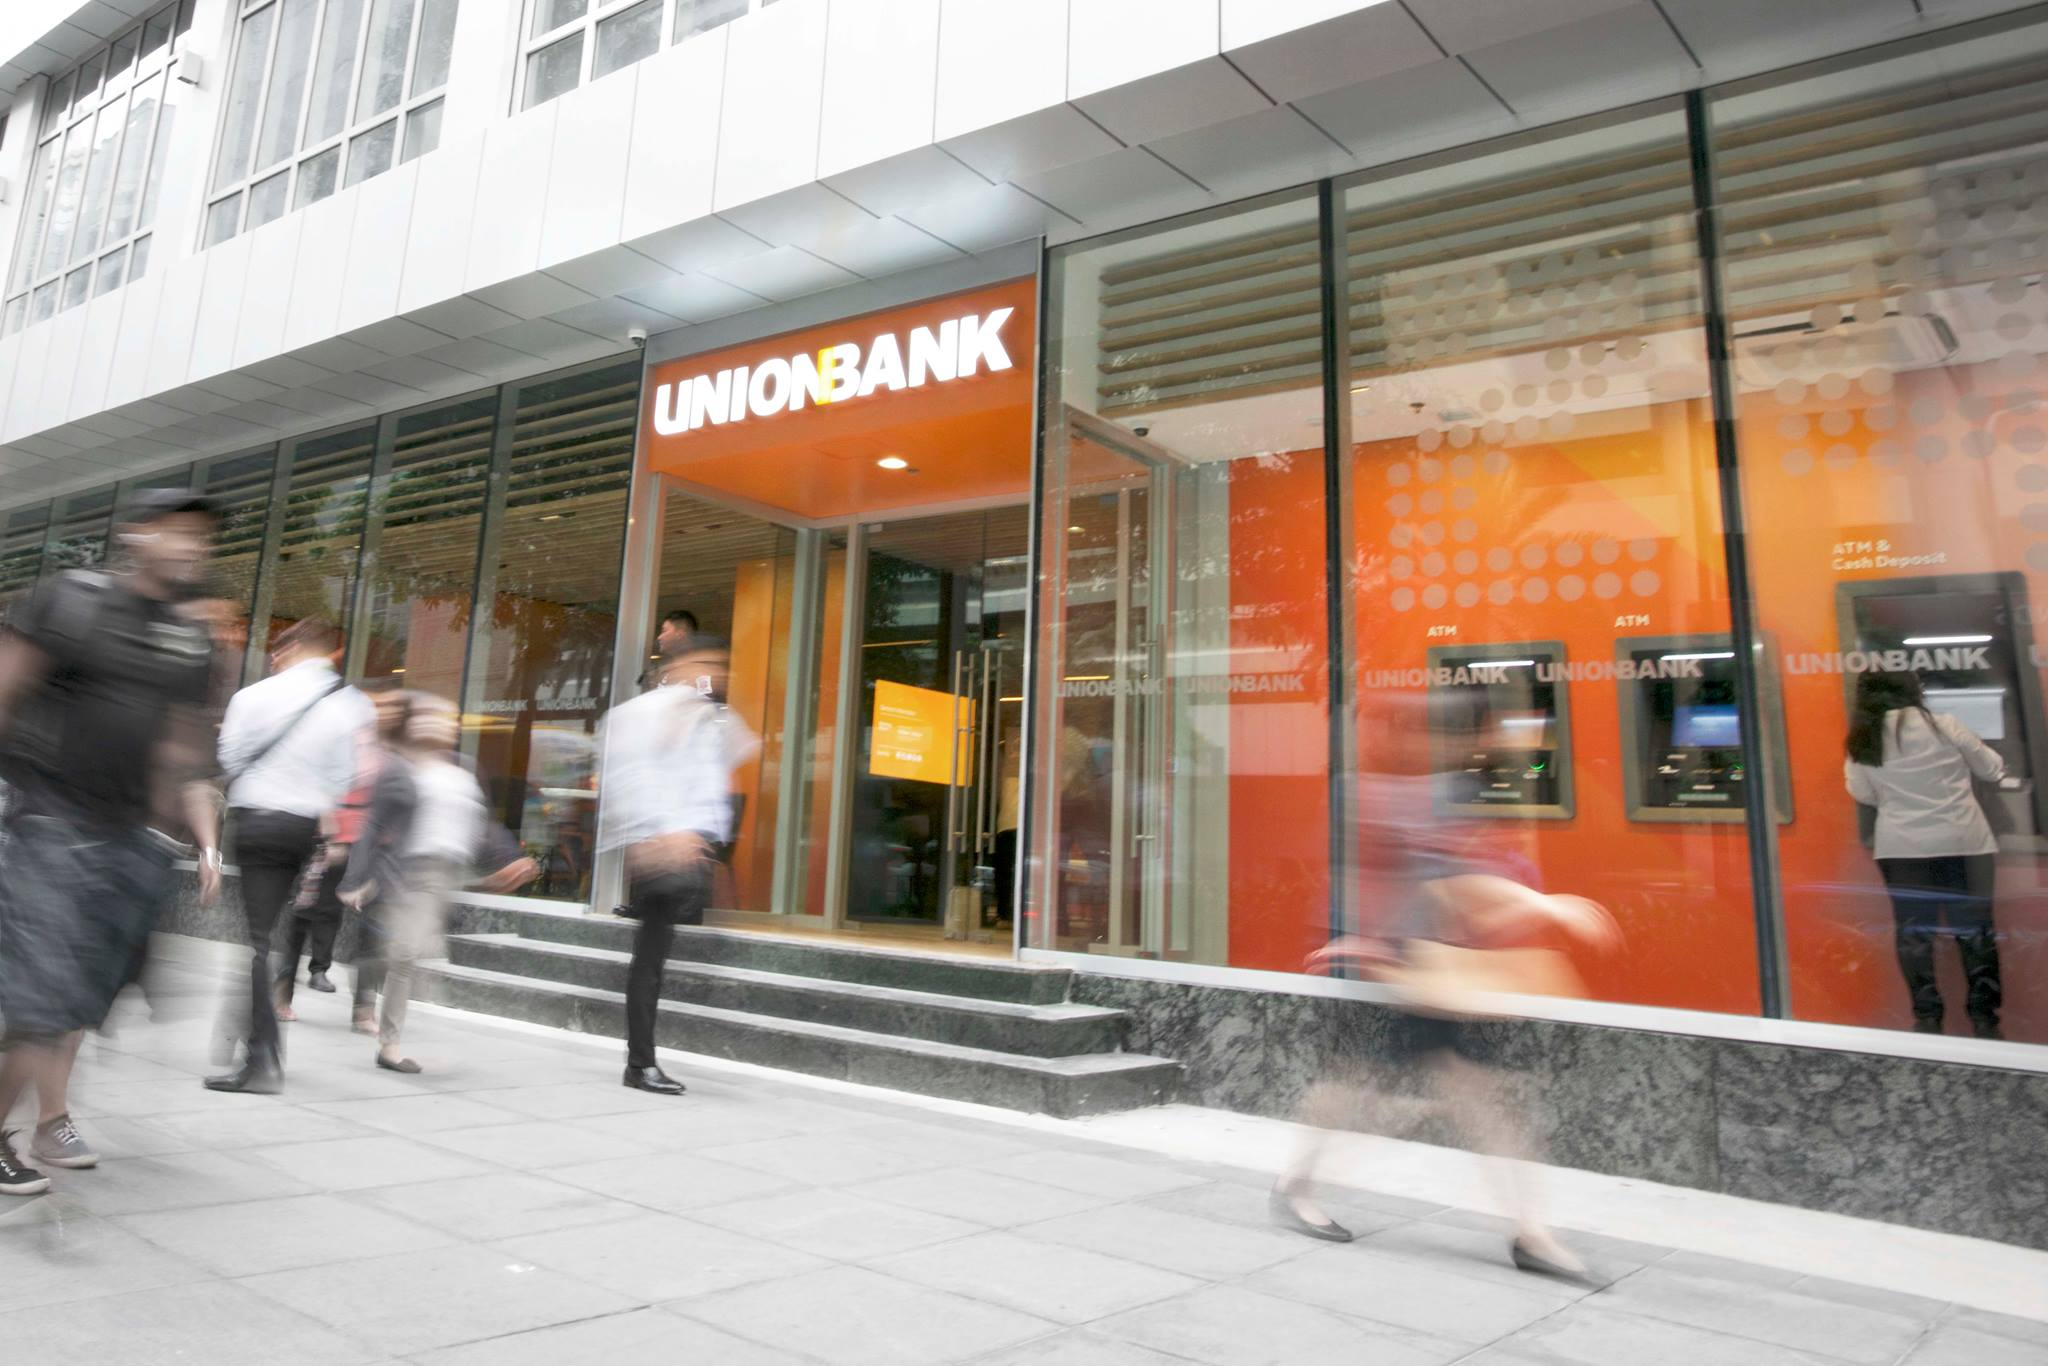 How to Open a UnionBank Account